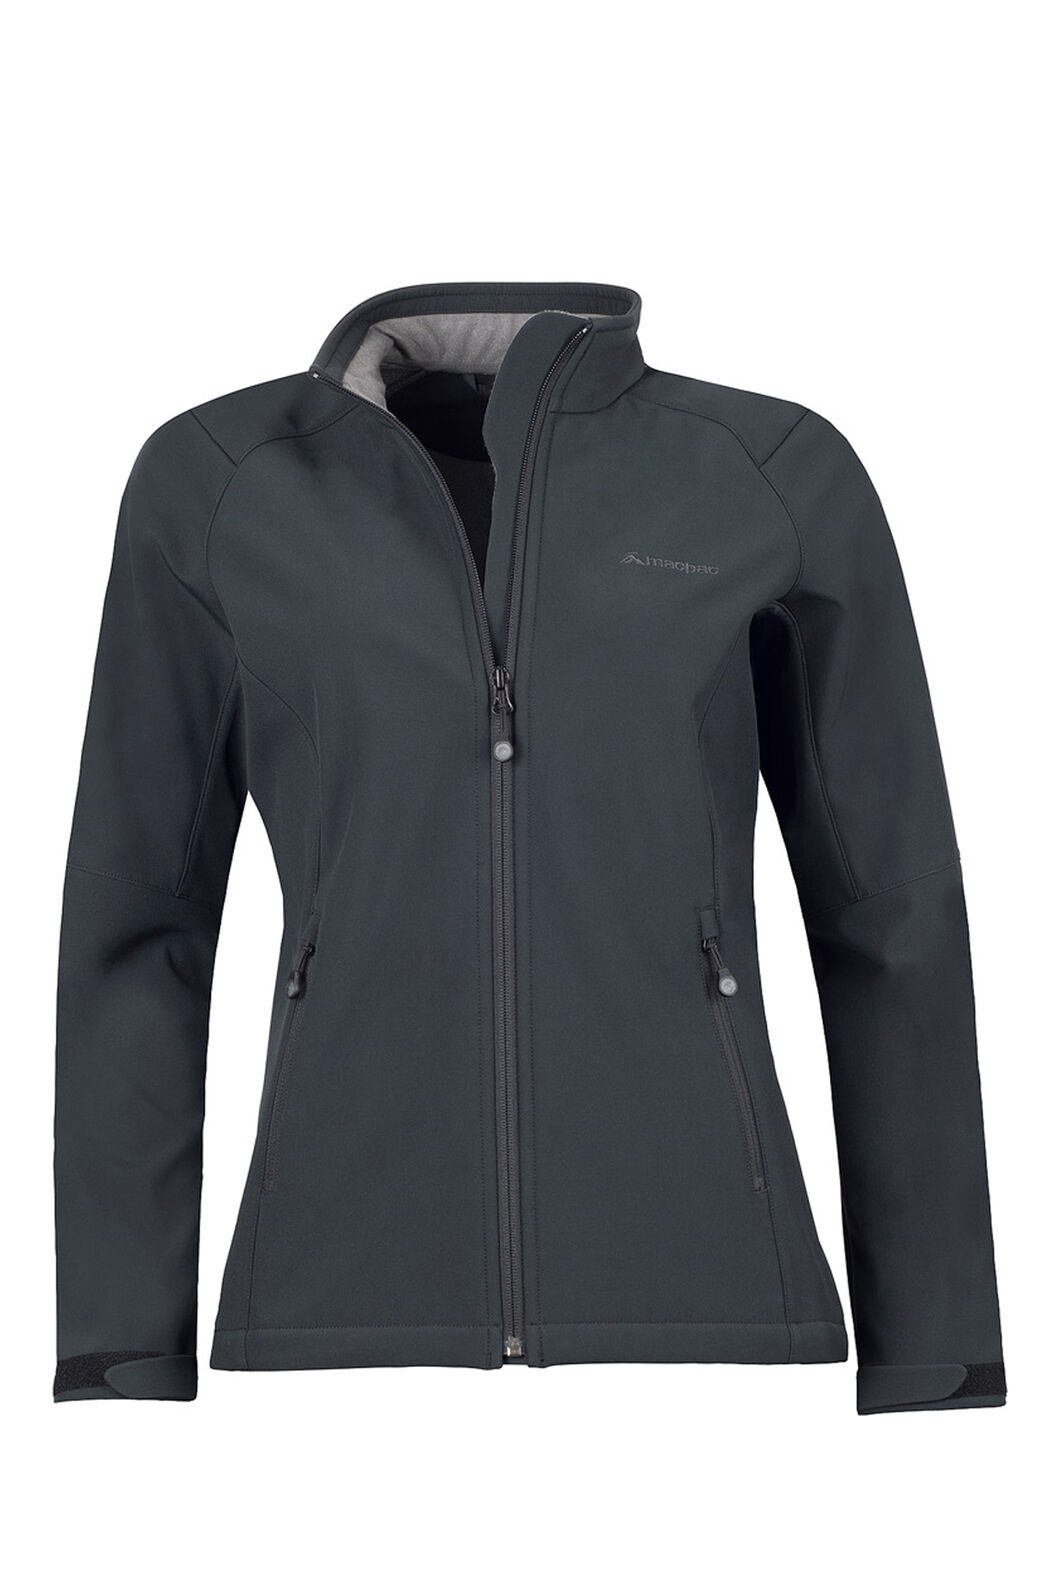 Macpac Sabre Softshell Jacket - Women's, Black, hi-res